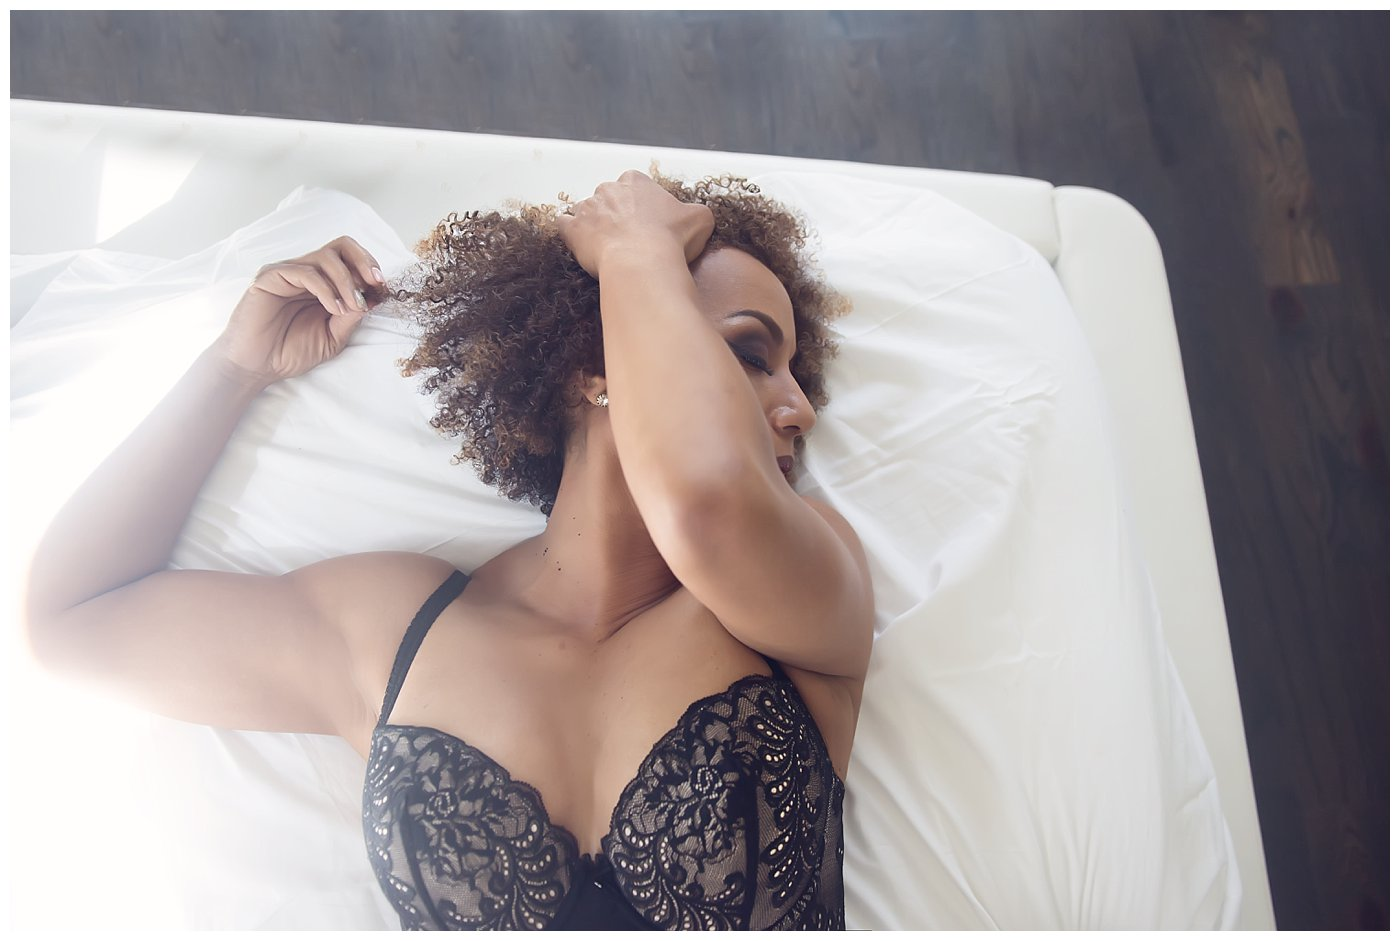 http://www.boudoirwithmary.com/wp-content/uploads/2017/11/2017-11-09_0008.jpg